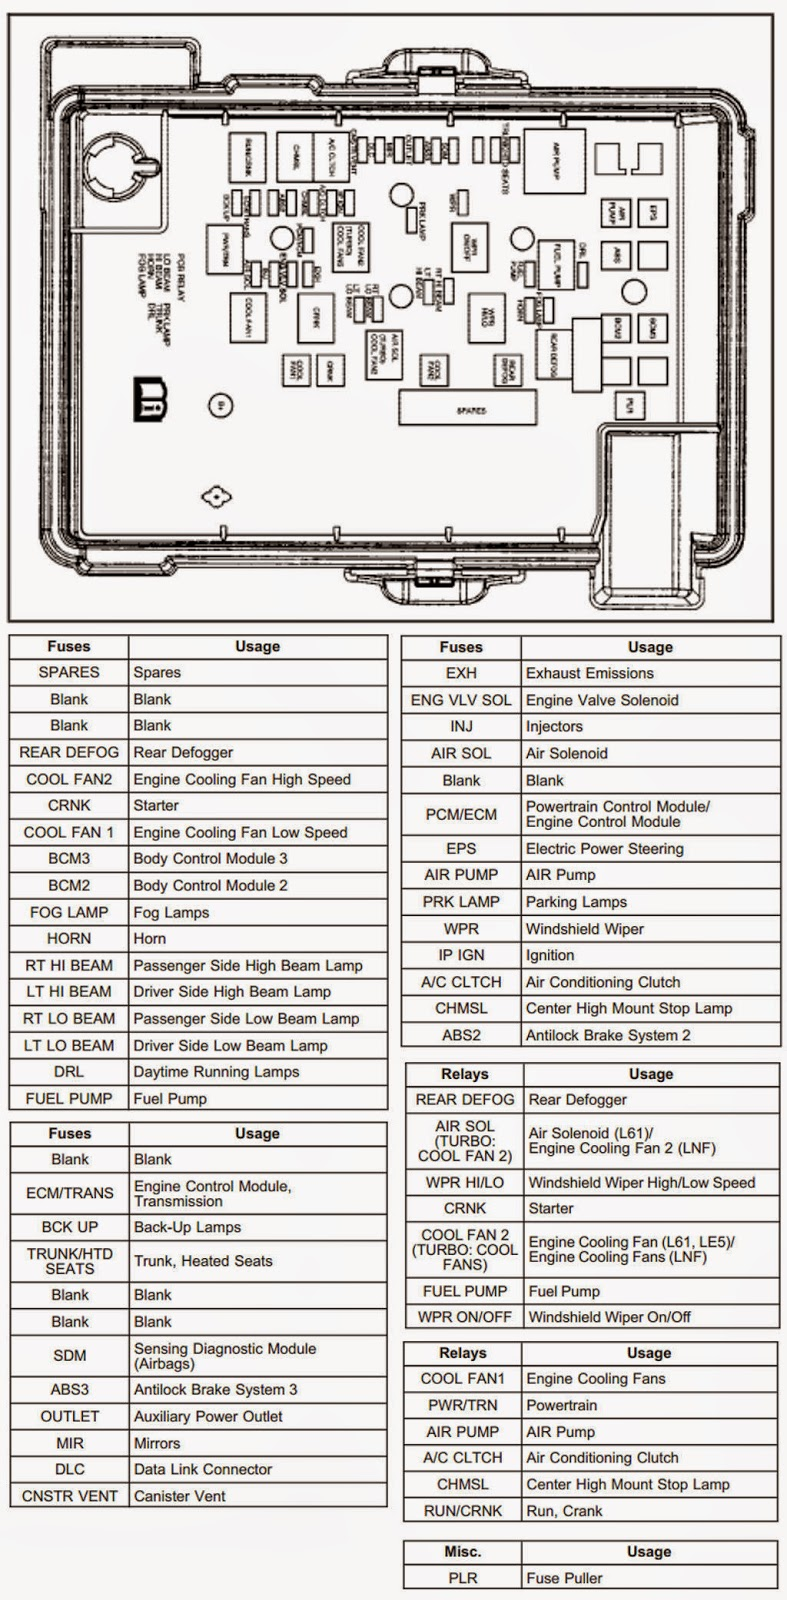 2006 Cobalt Fuse Box List Of Schematic Circuit Diagram 1983 Chevrolet Motor Another Blog About Wiring U2022 Rh Ok2 Infoservice Ru Ls Chevy